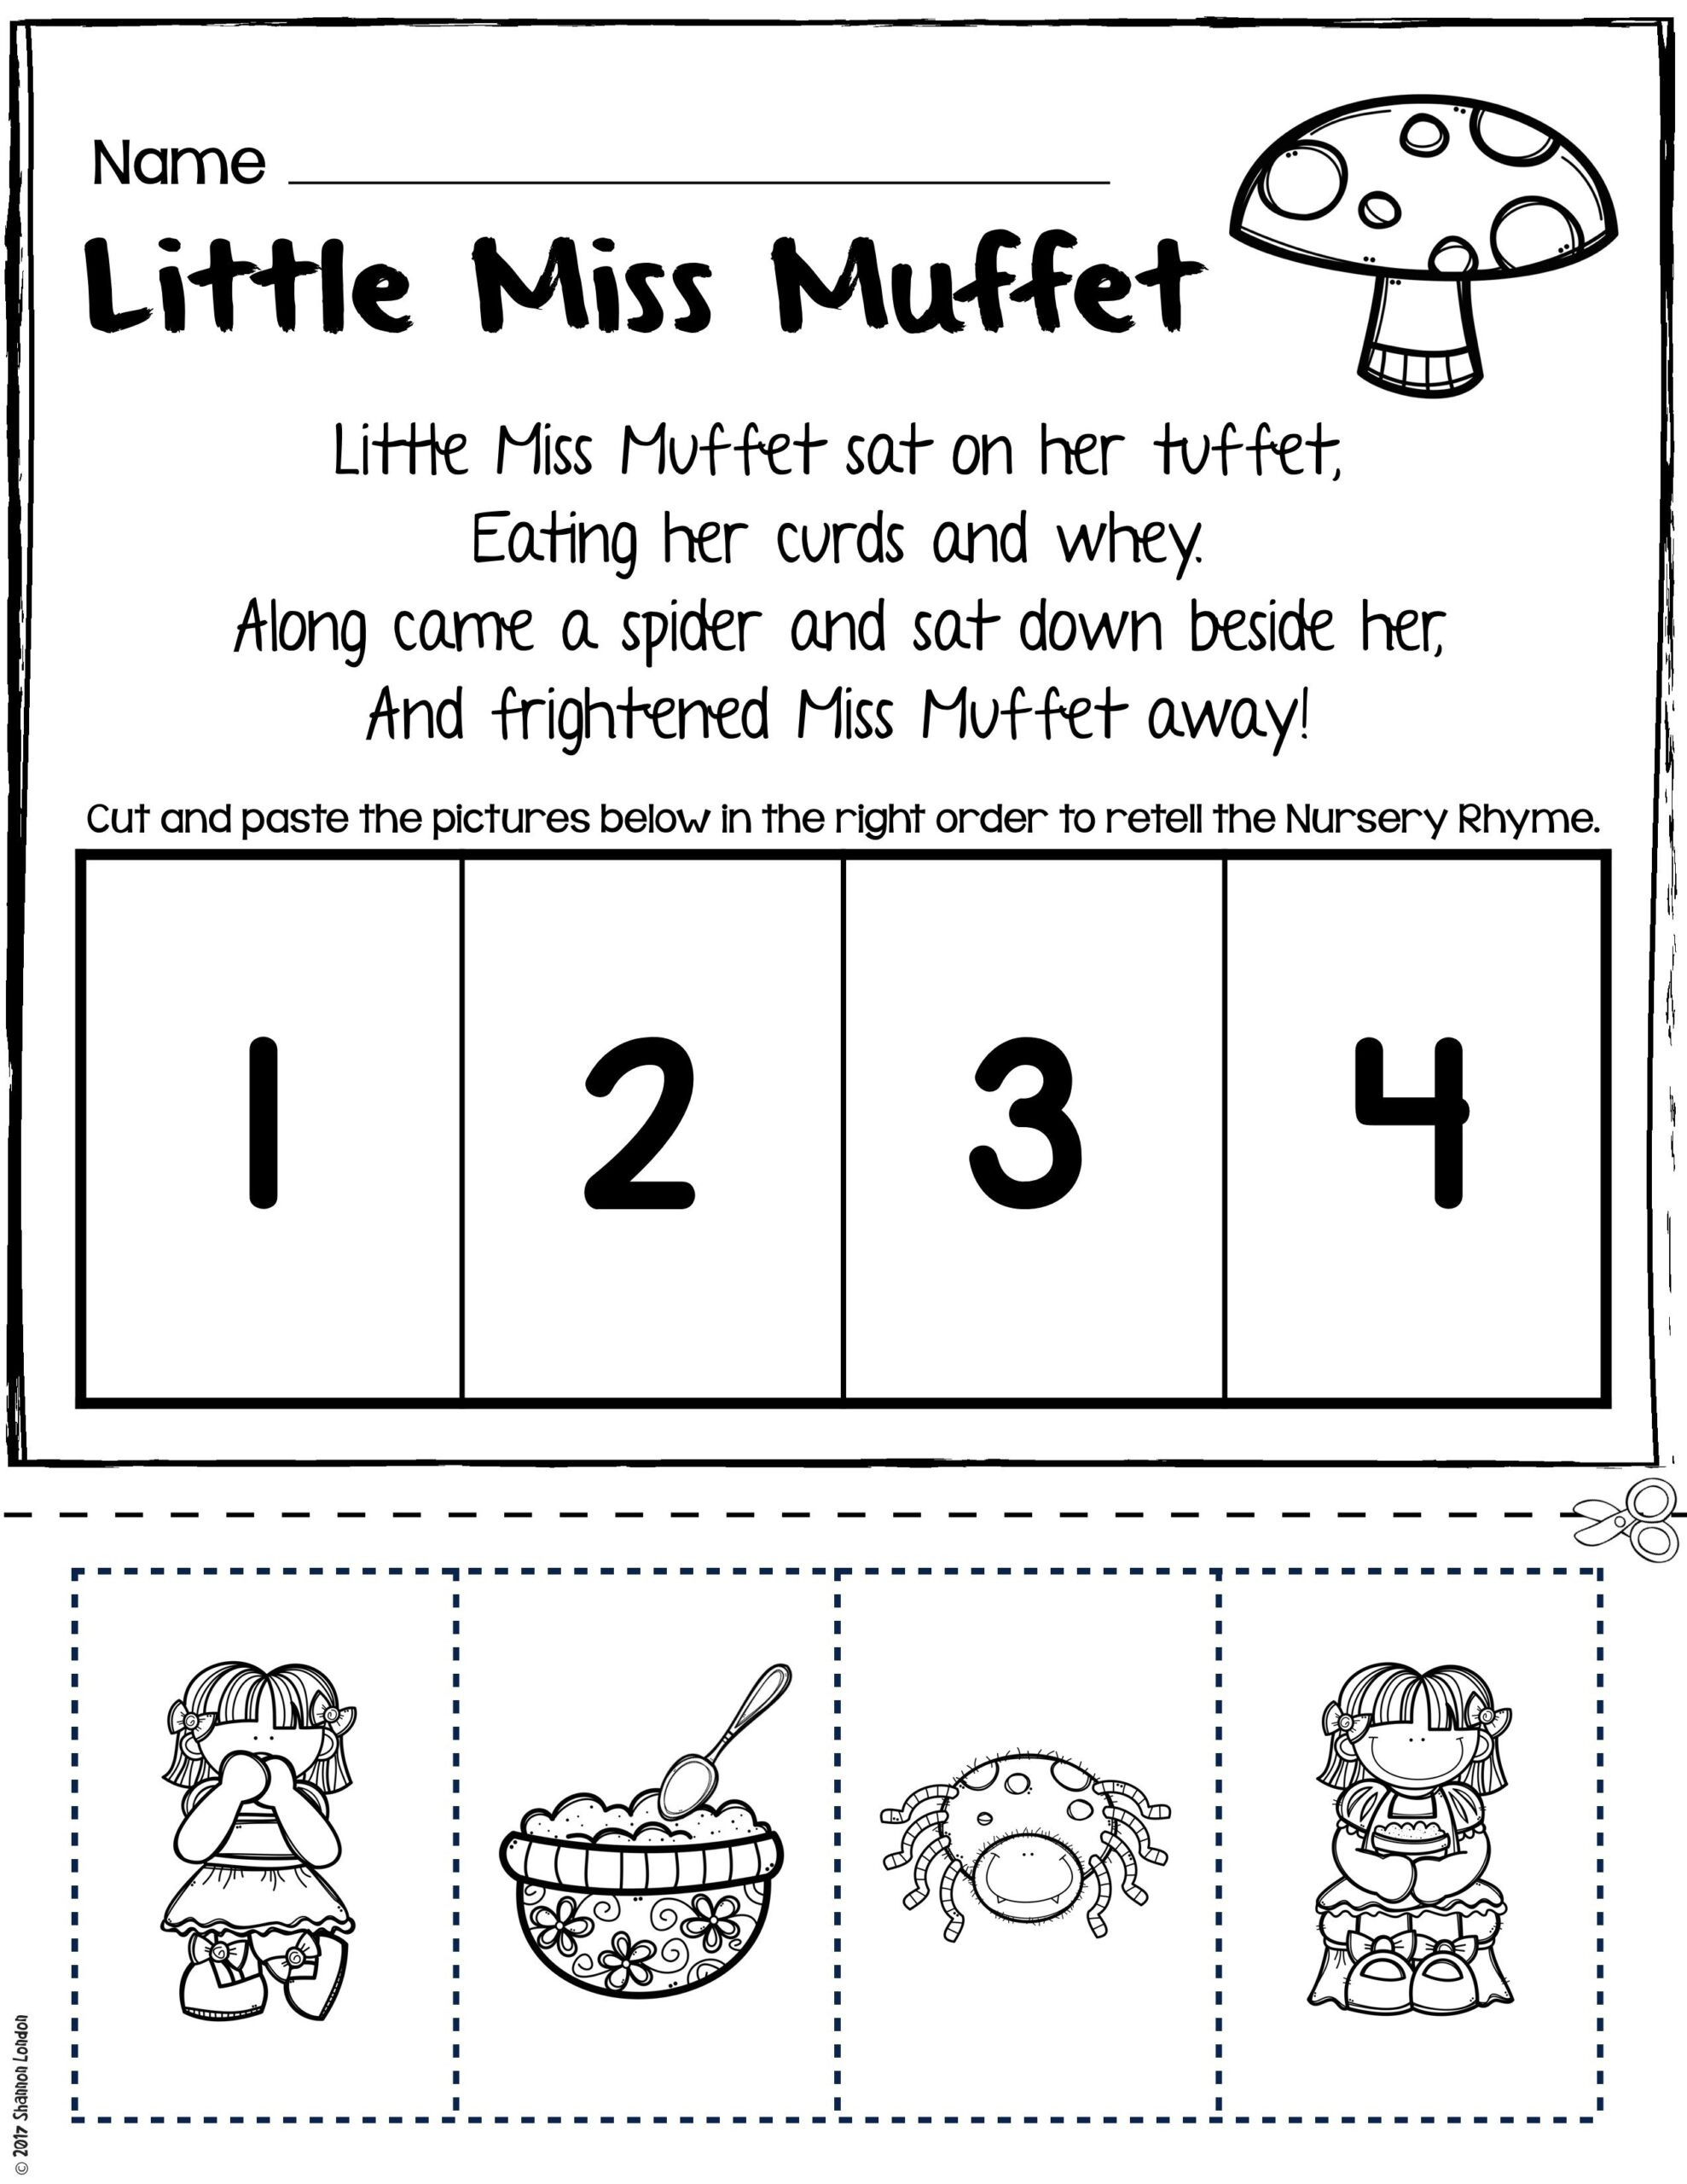 Rhyming Worksheets for Preschool Rhyming Printables for Preschool Worksheet